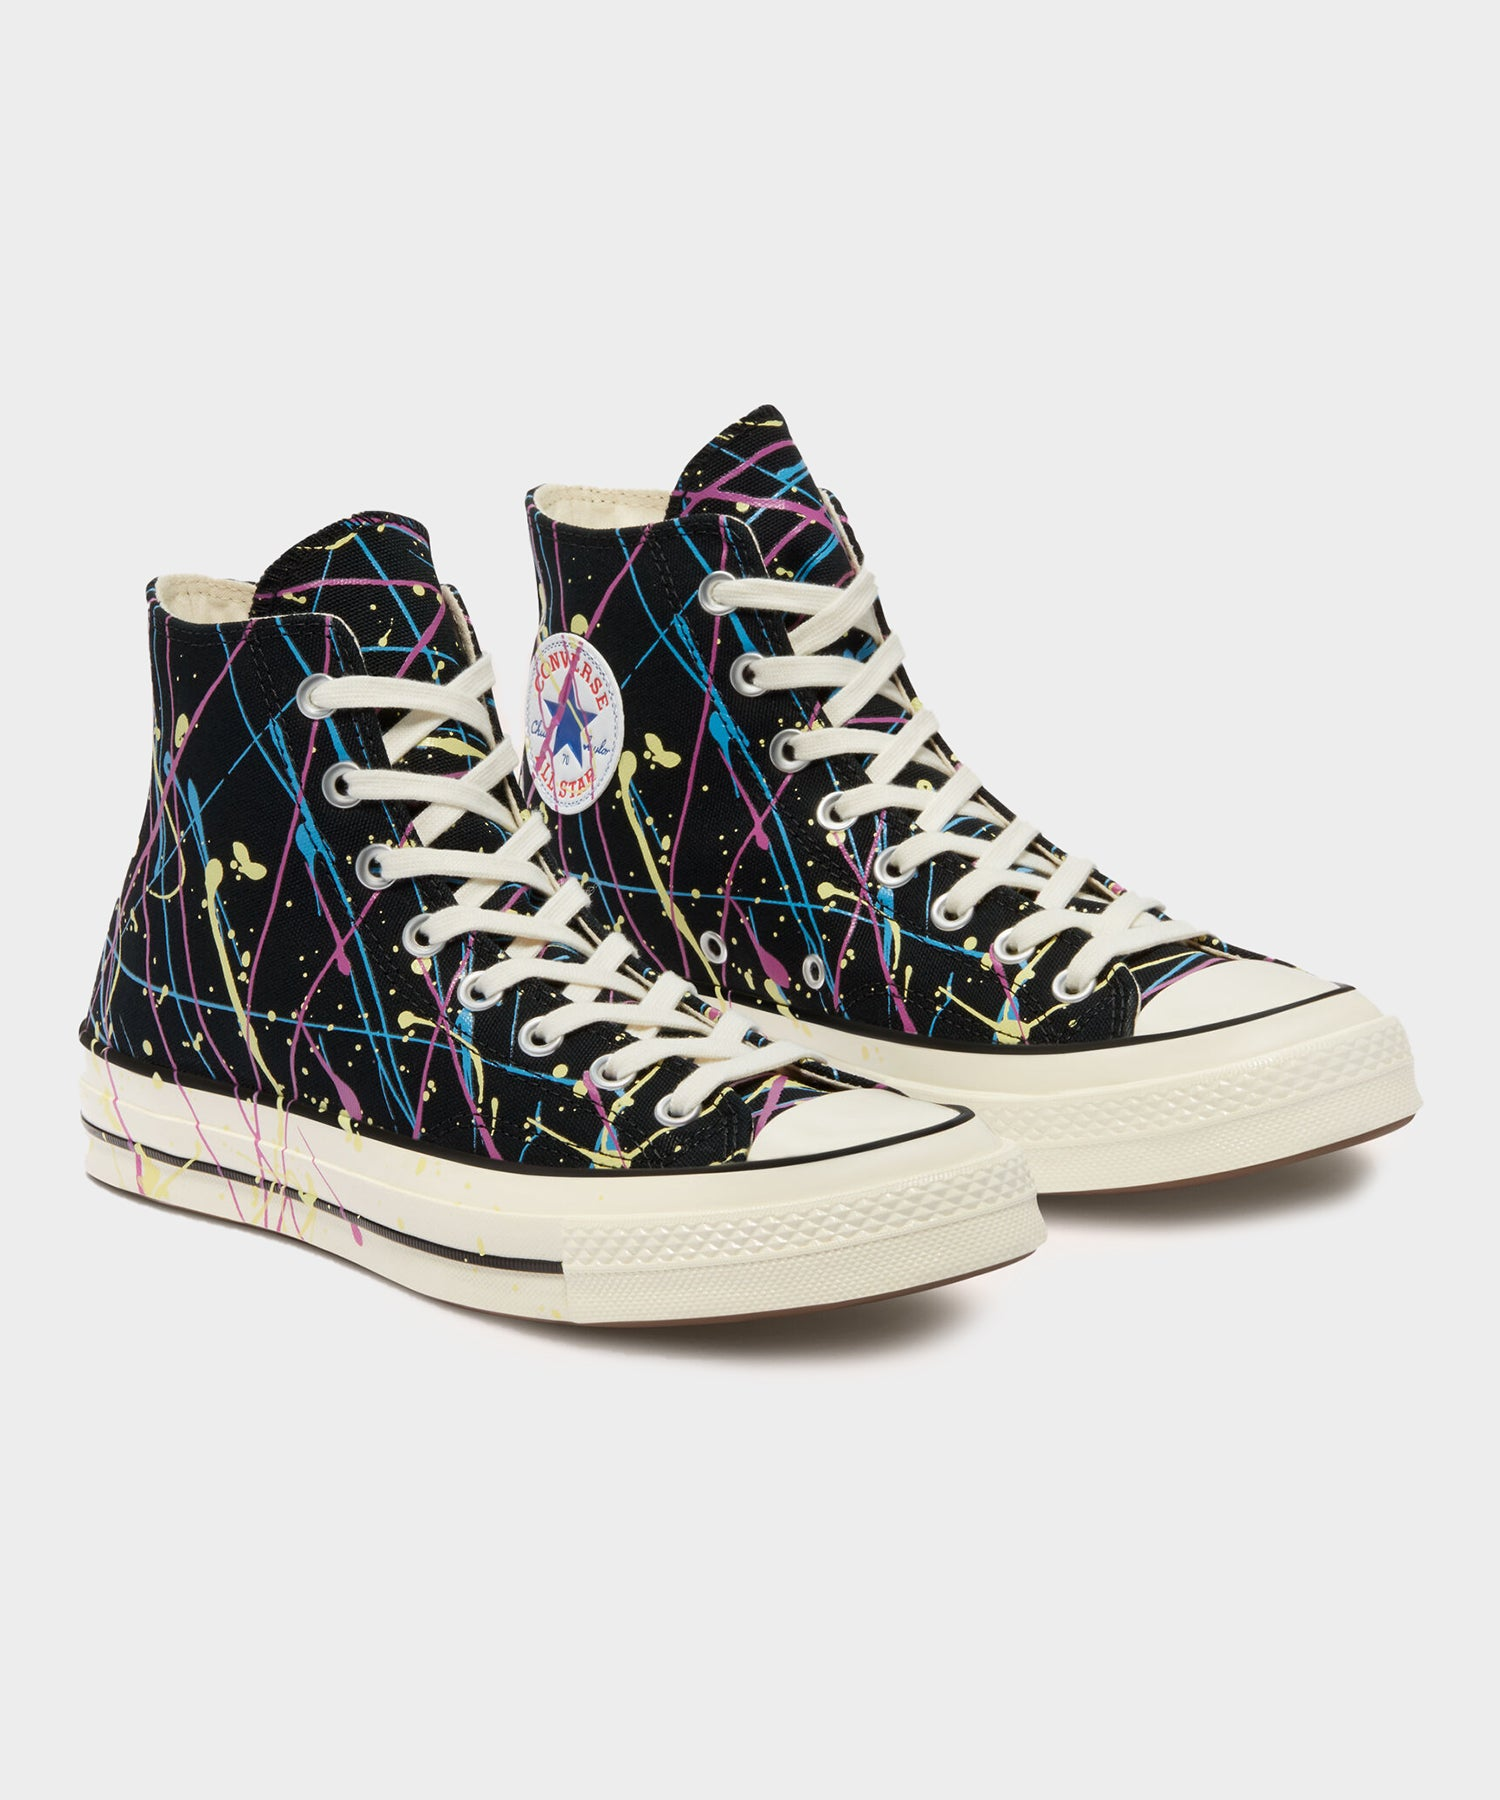 Converse Chuck 70 Archive Paint Splatter in Black - Todd Snyder